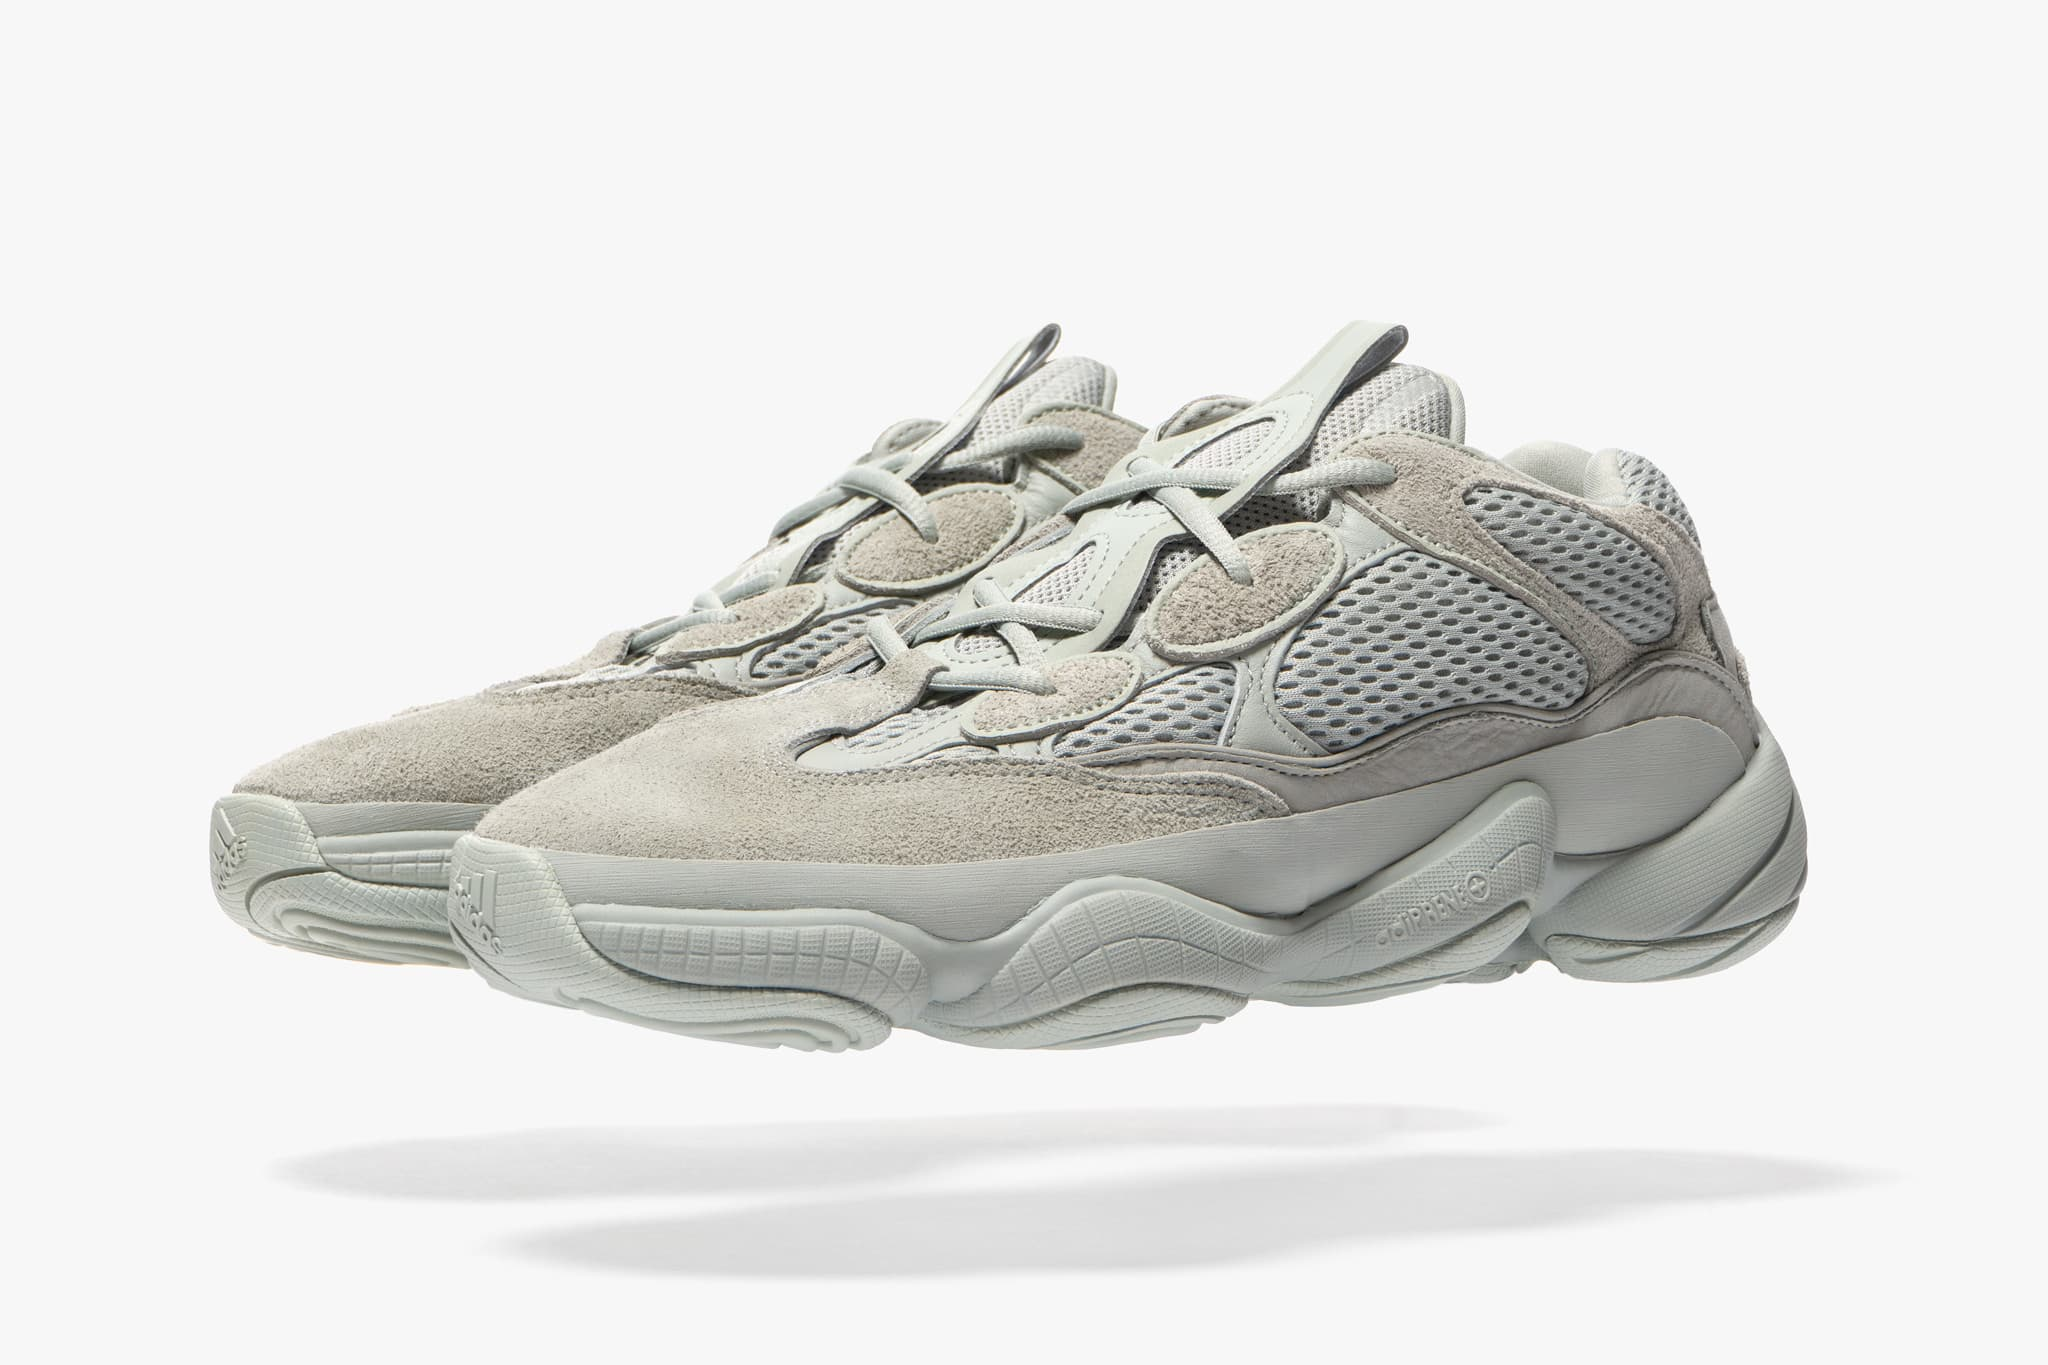 quality design 5bab9 e73b3 adidas Yeezy 500 'Salt' | Release Date: 11.30.18 | HAVEN